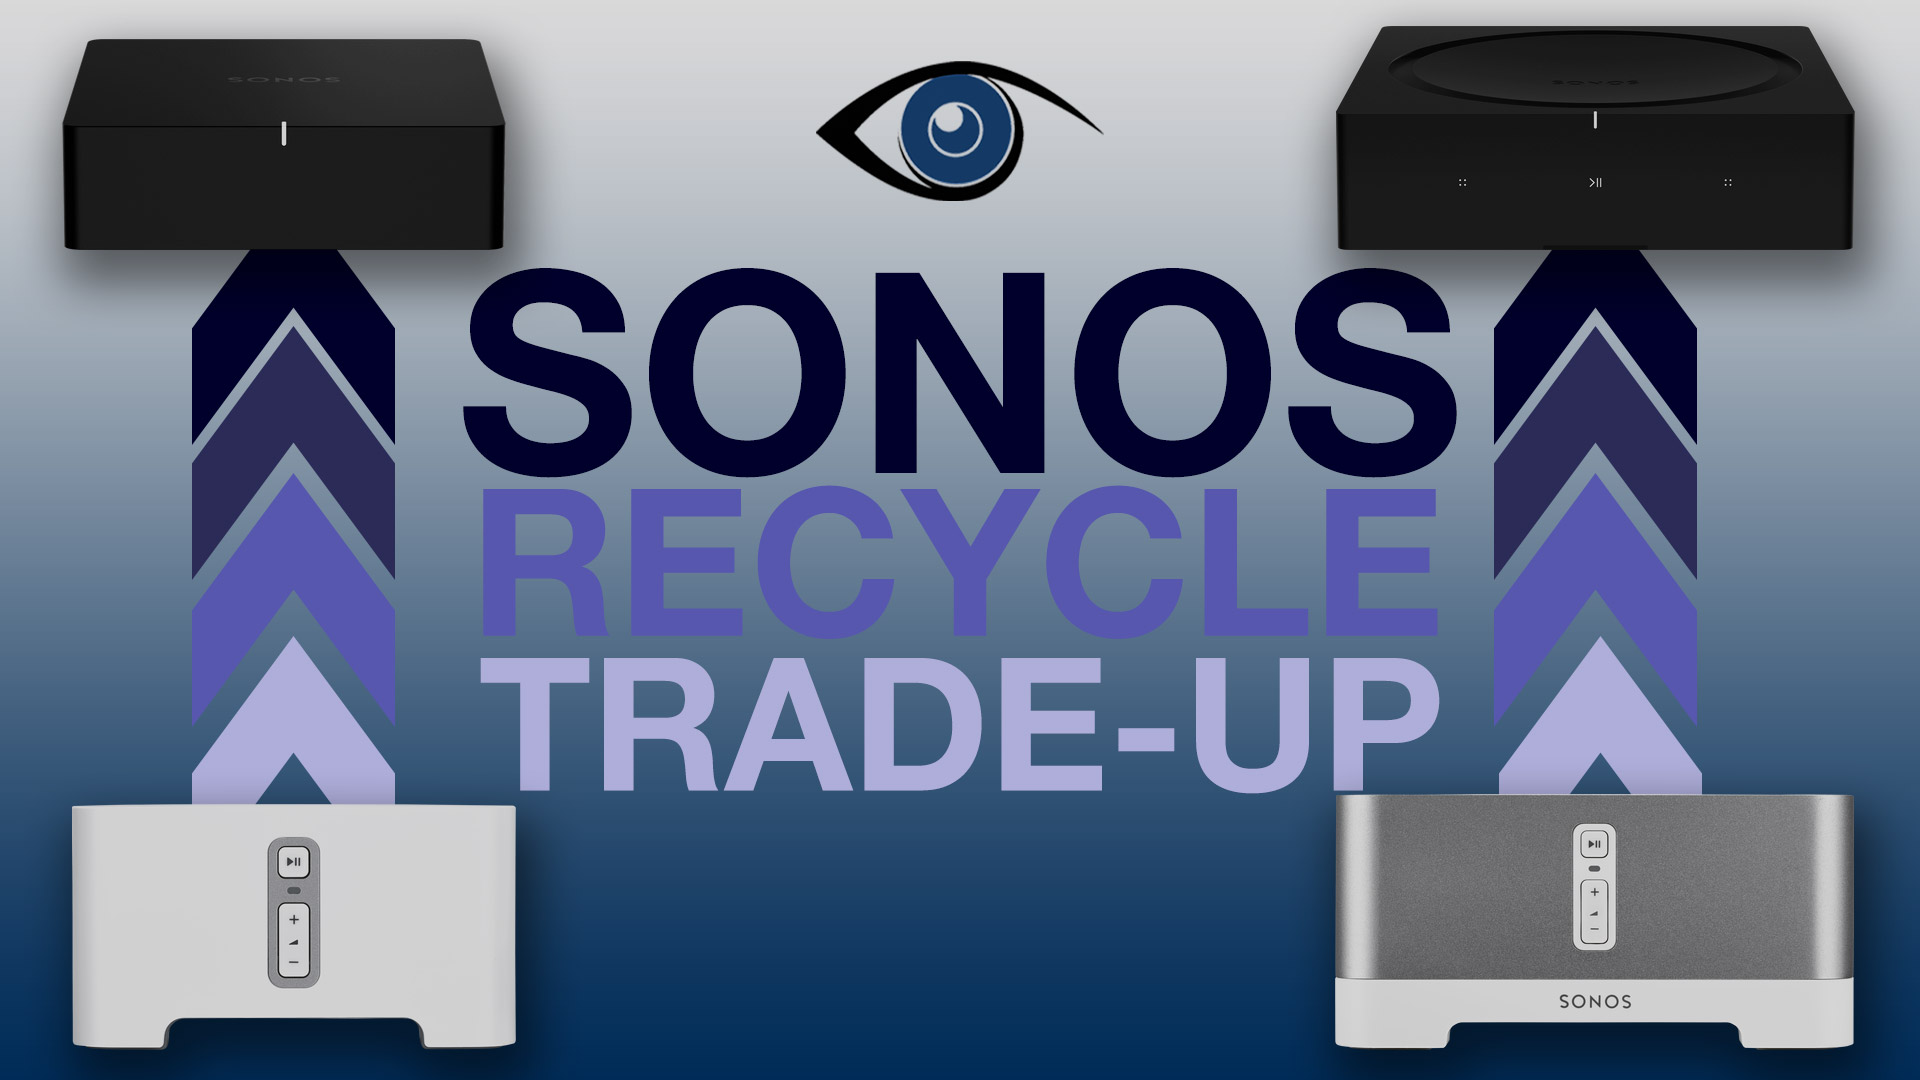 Sonos Trade-Up Recycle Programme | Unilet Sound & Vision